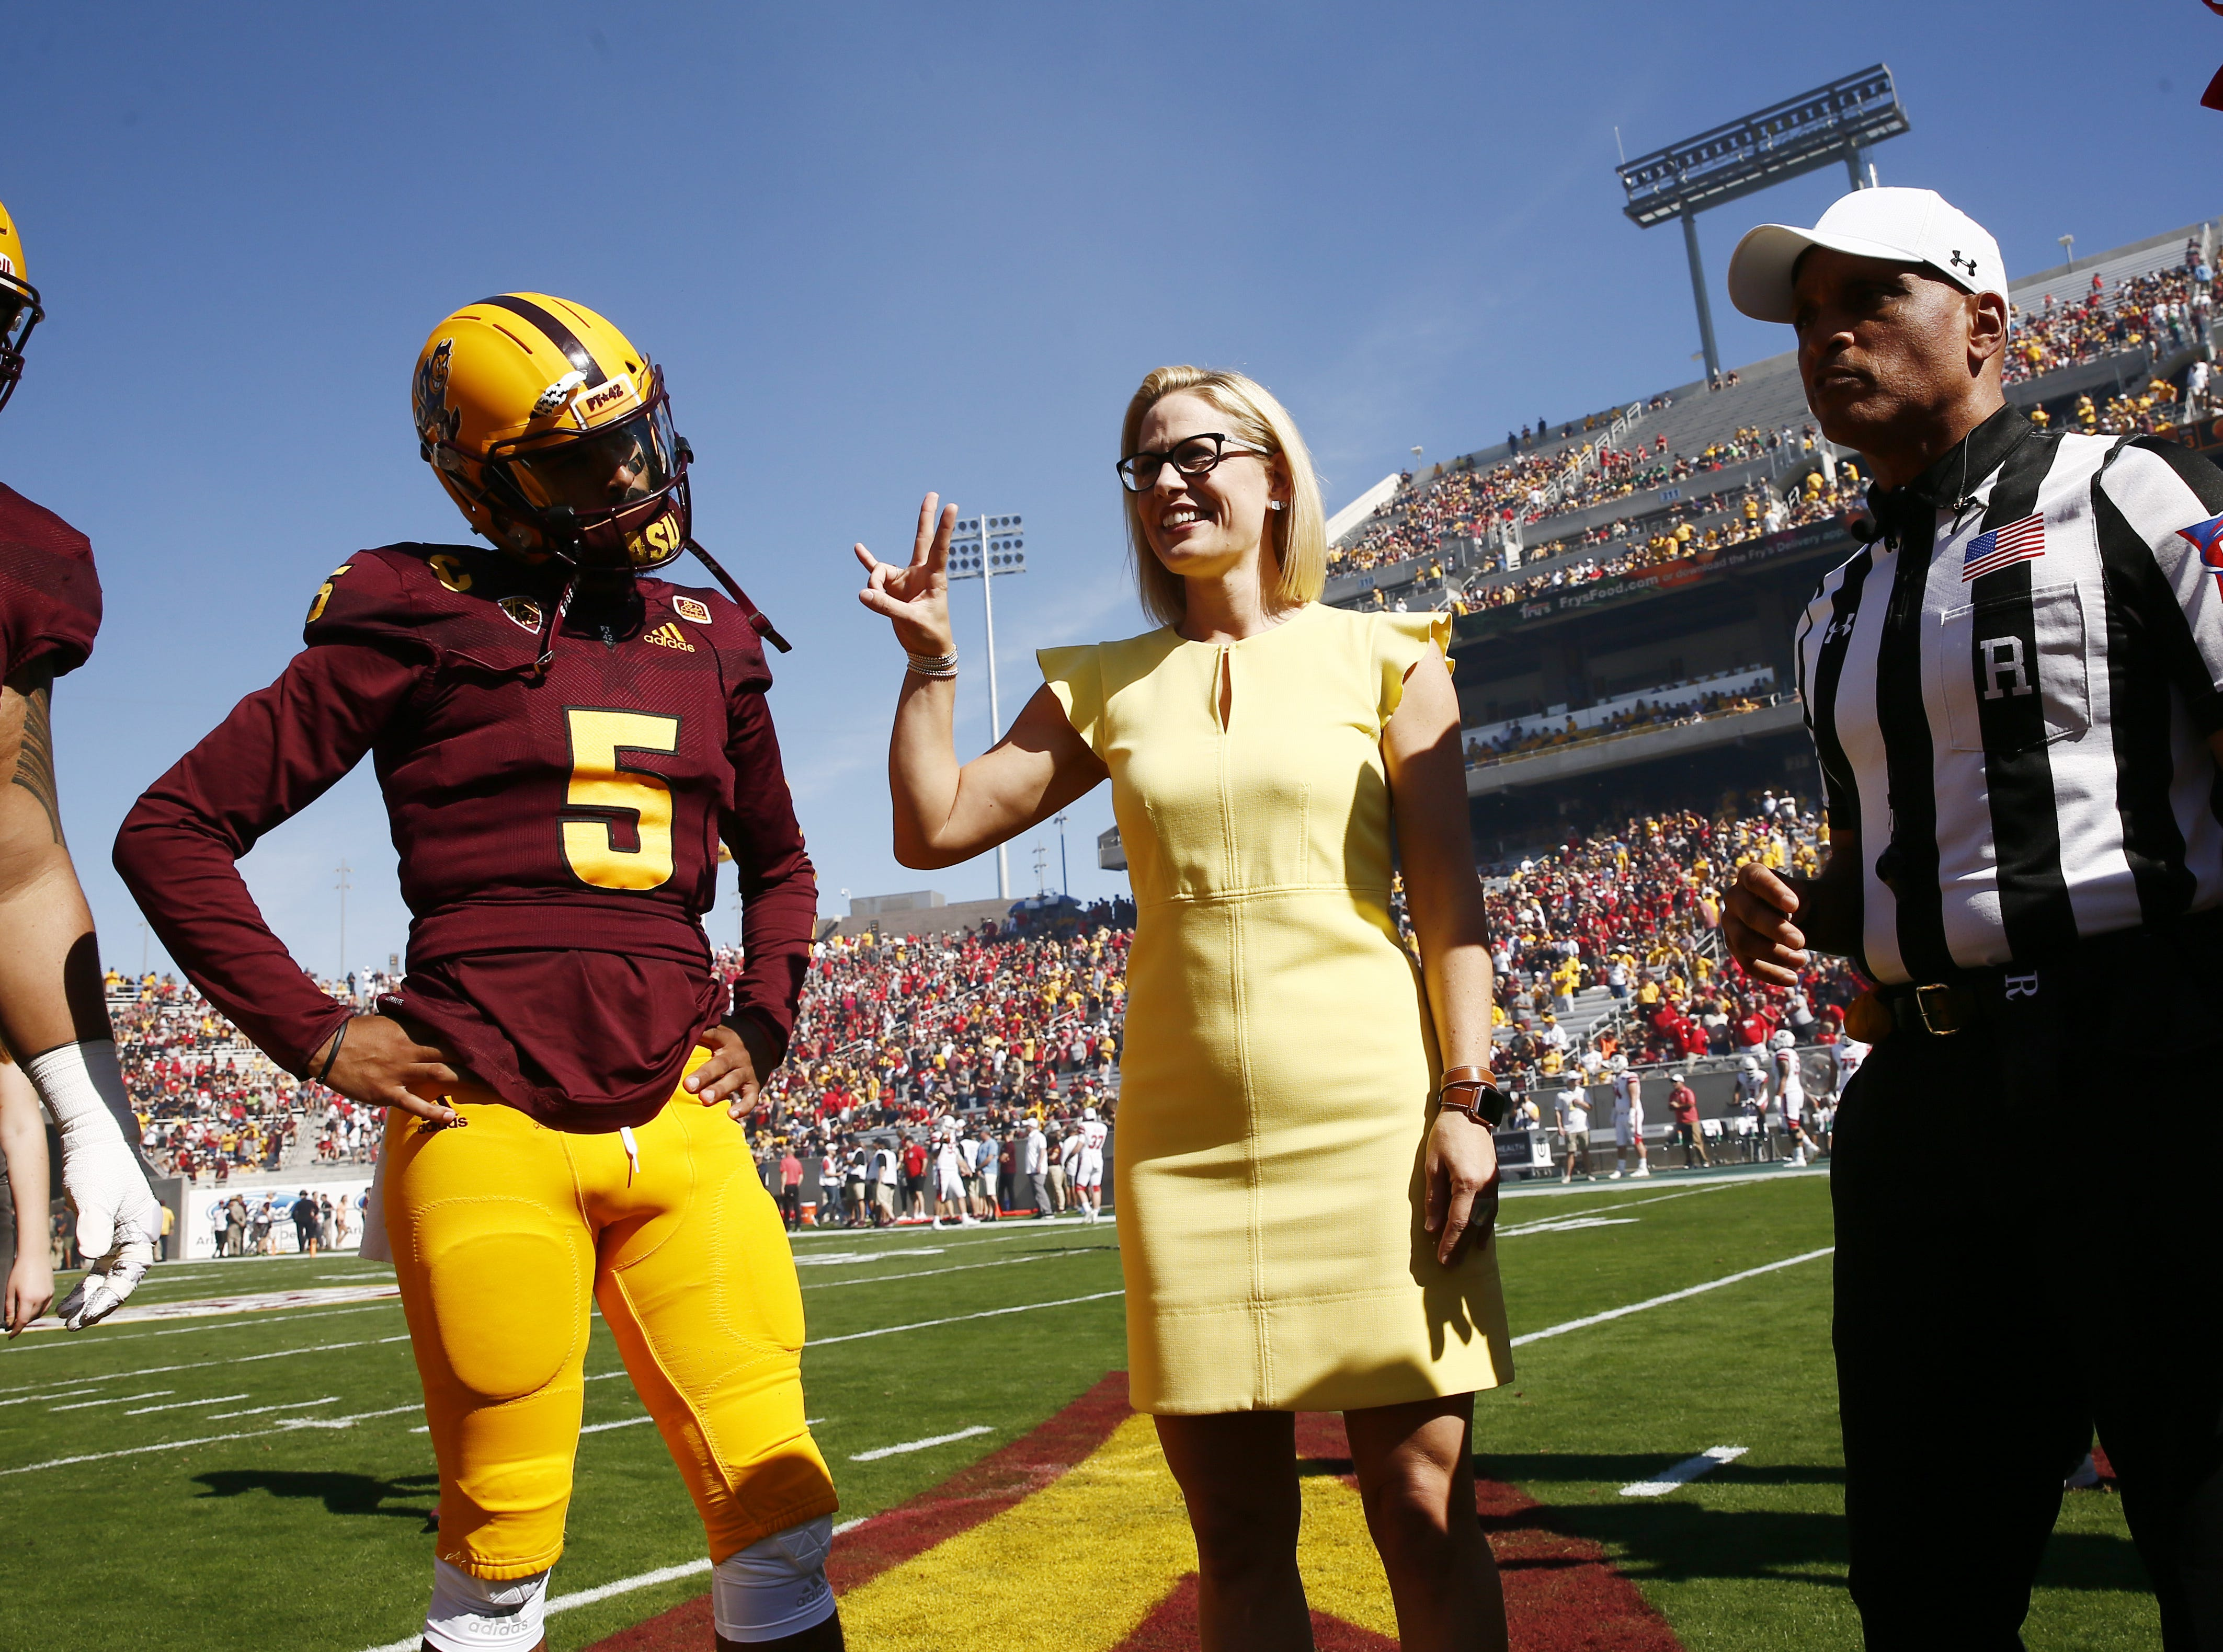 Rep. Kyrsten Sinema, D-Ariz., the Democratic candidate for the U.S. Senate in the huddle for the coin toss as Utah plays Arizona State. Sinema is running against Republication Martha McSally for the U.S. Senate.